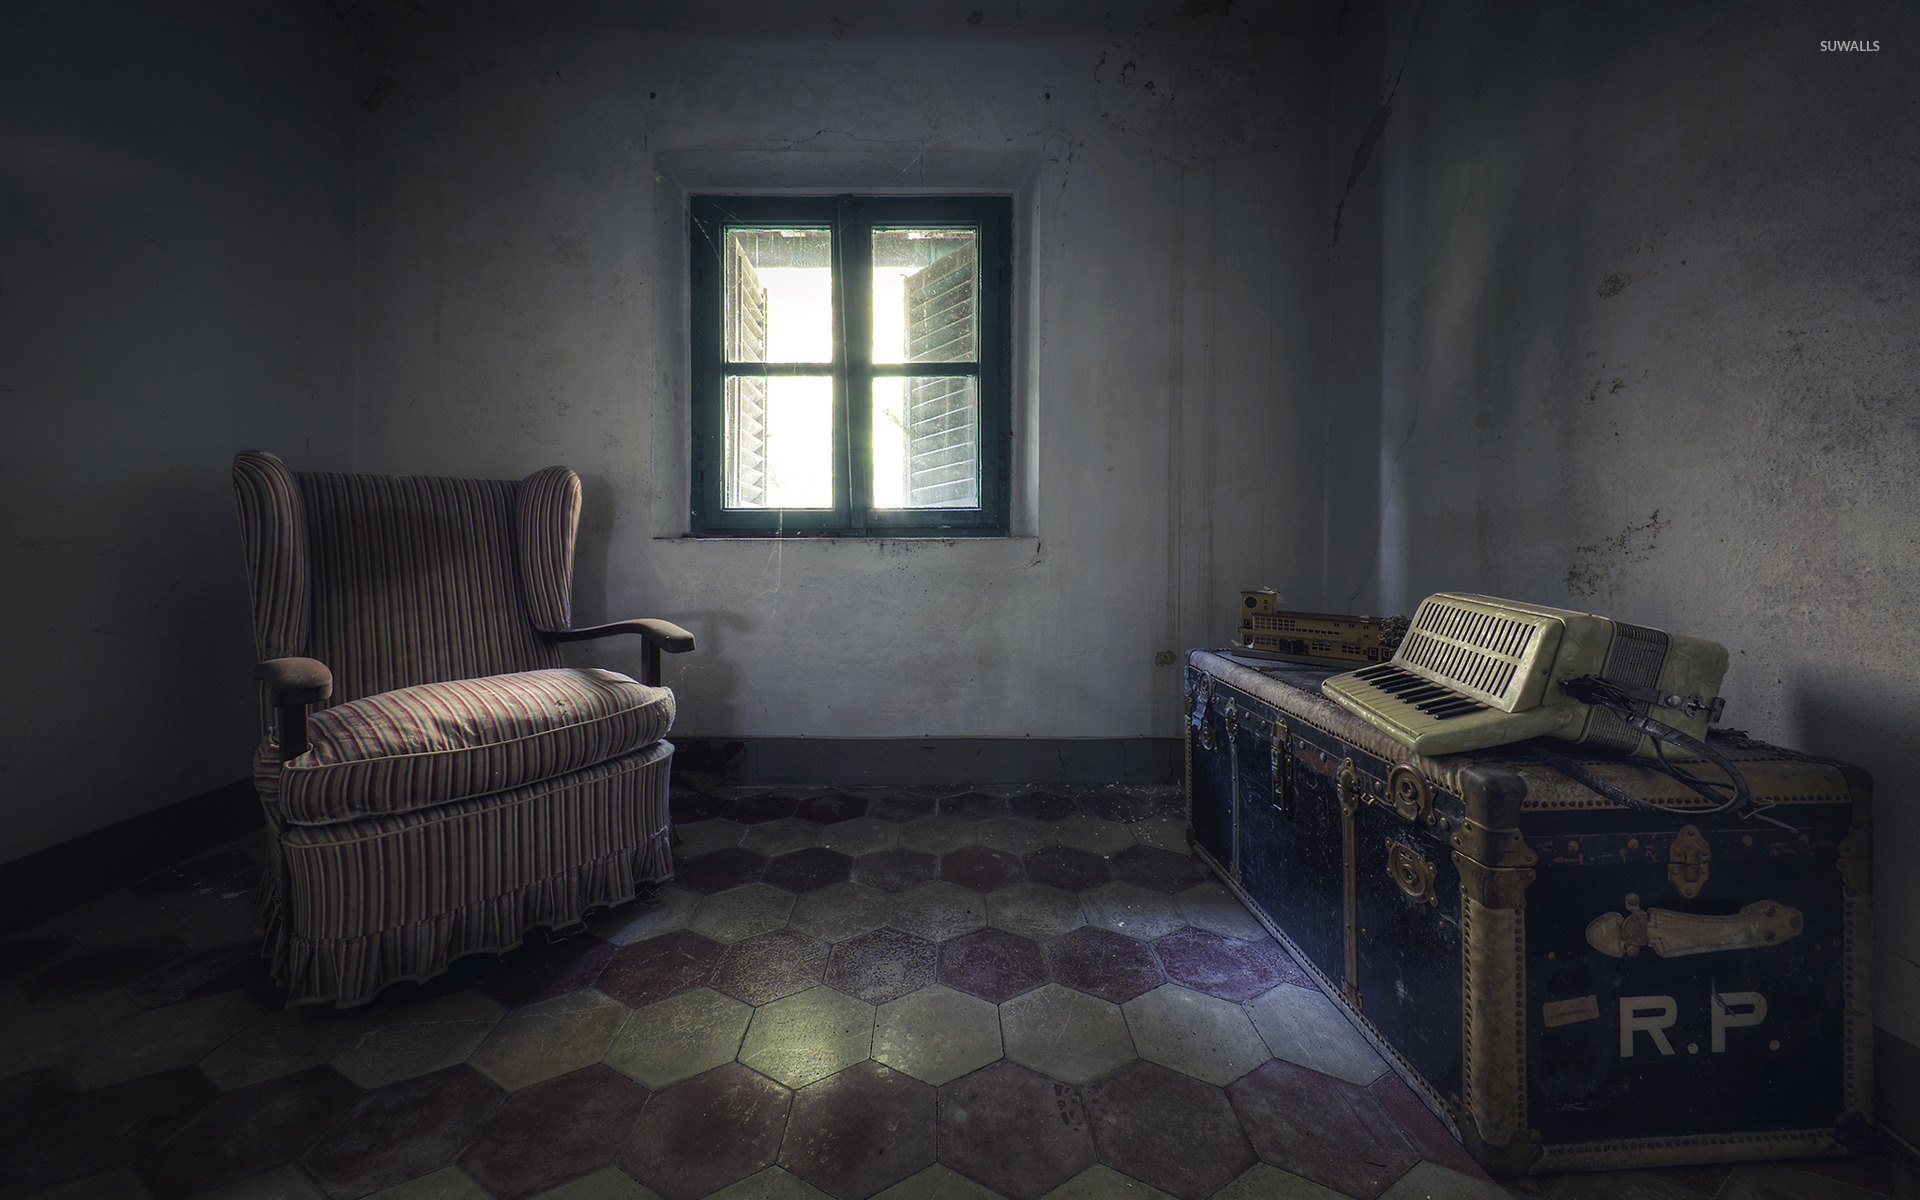 Abandoned Room Wallpaper Photography Wallpapers 47621